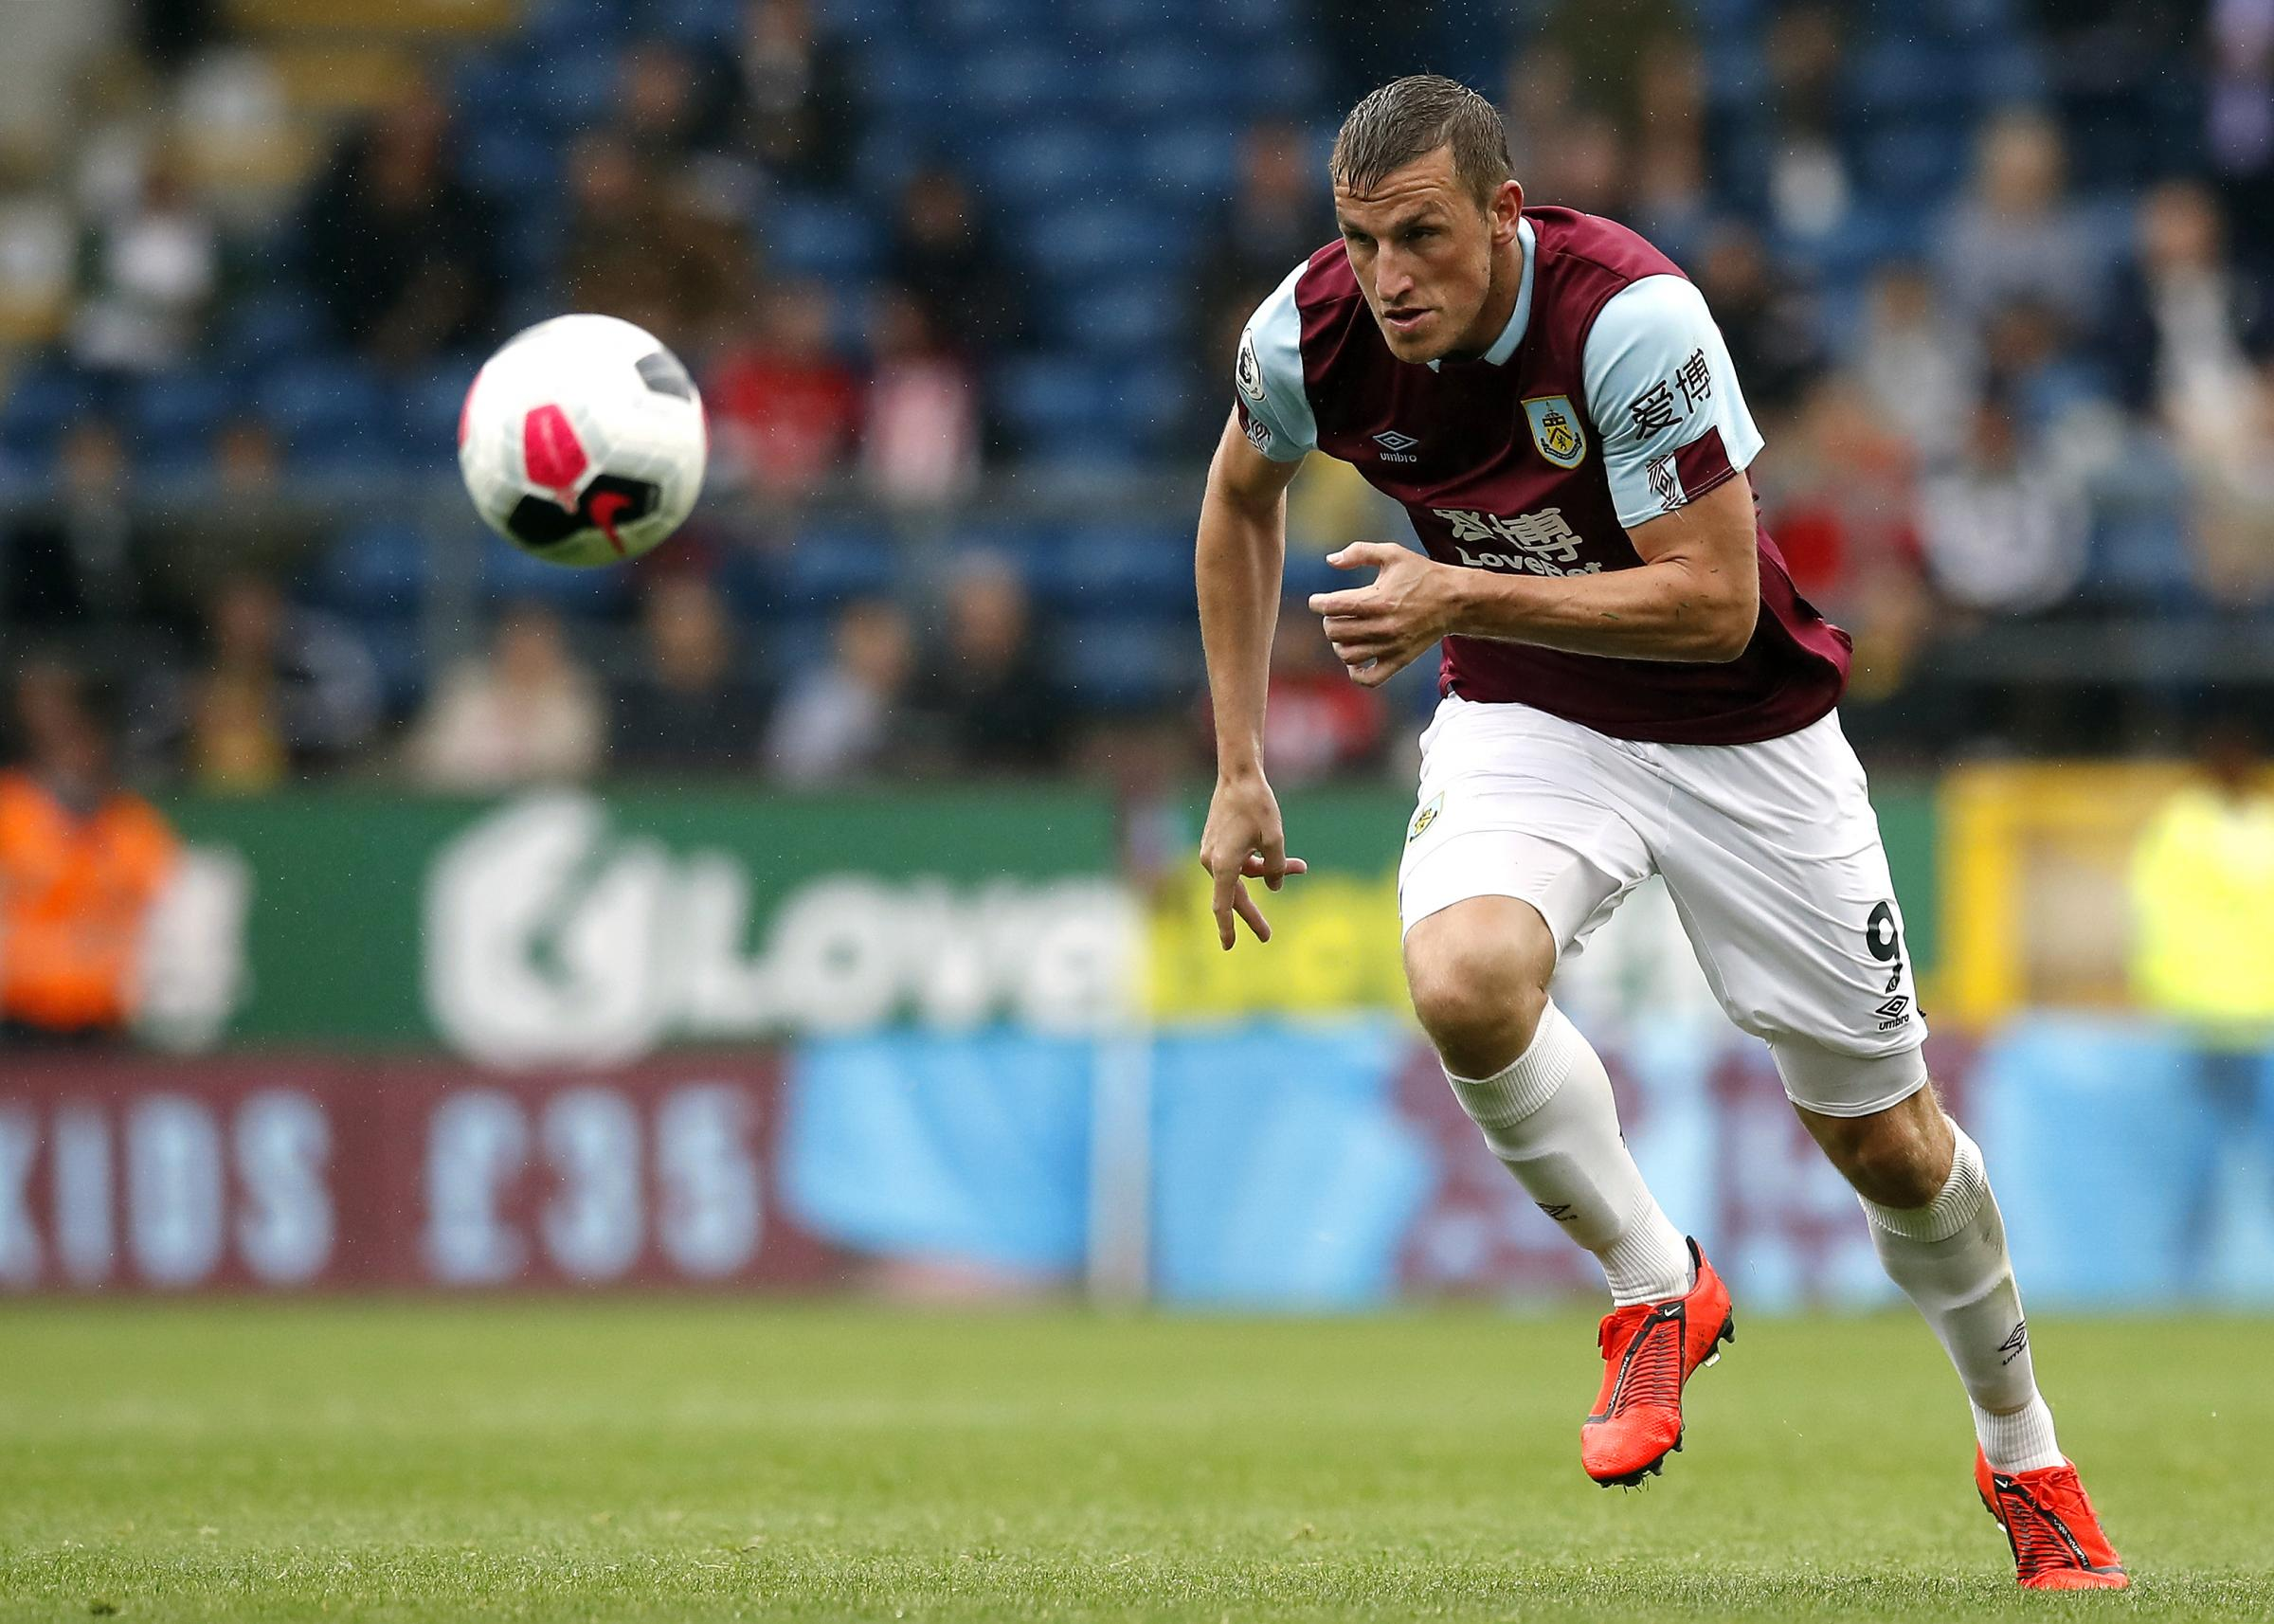 Burnley striker Chris Wood confident he'll be in goals soon